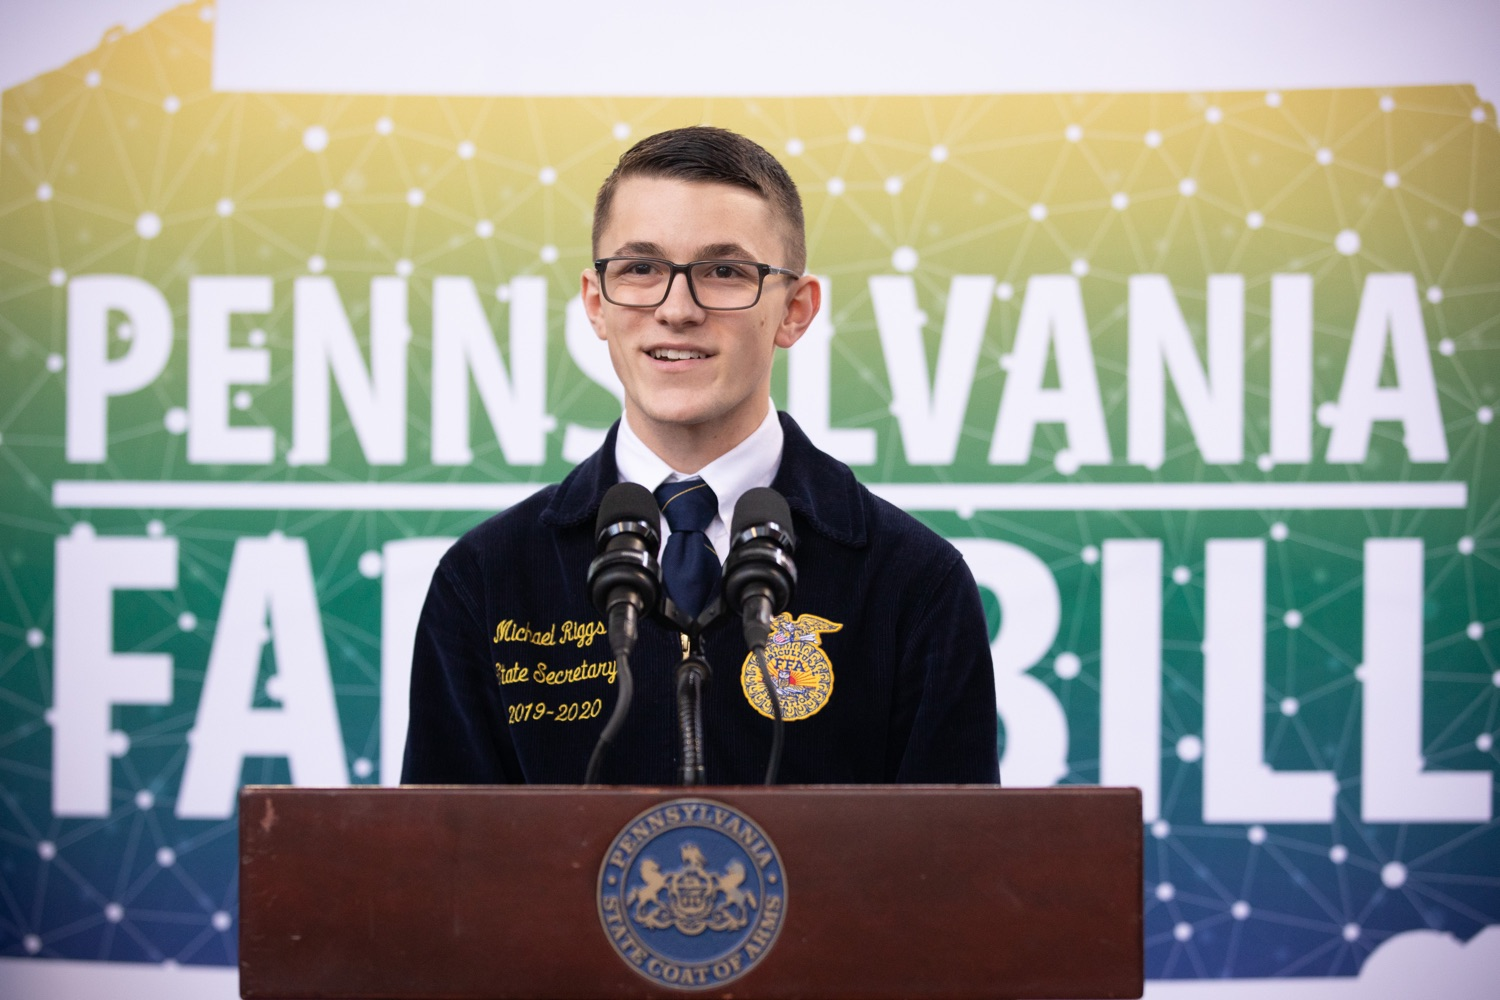 "<a href=""https://filesource.wostreaming.net/commonwealthofpa/photo/17649_agric_youth_grant_farm_bill_dz_006.jpg"" target=""_blank"">⇣ Download Photo<br></a>Michael Riggs, State Secretary Pennsylvania FFA, speaking at the announcement. Governor Tom Wolf today announced the approval of $500,000 in Ag and Youth Grants to fund 55 projects that will improve access to agriculture education in the commonwealth, with a goal of addressing the looming 75,000 workforce deficit Pennsylvanias agriculture industry faces in the coming decade. Harrisburg, PA  January 6, 2020"